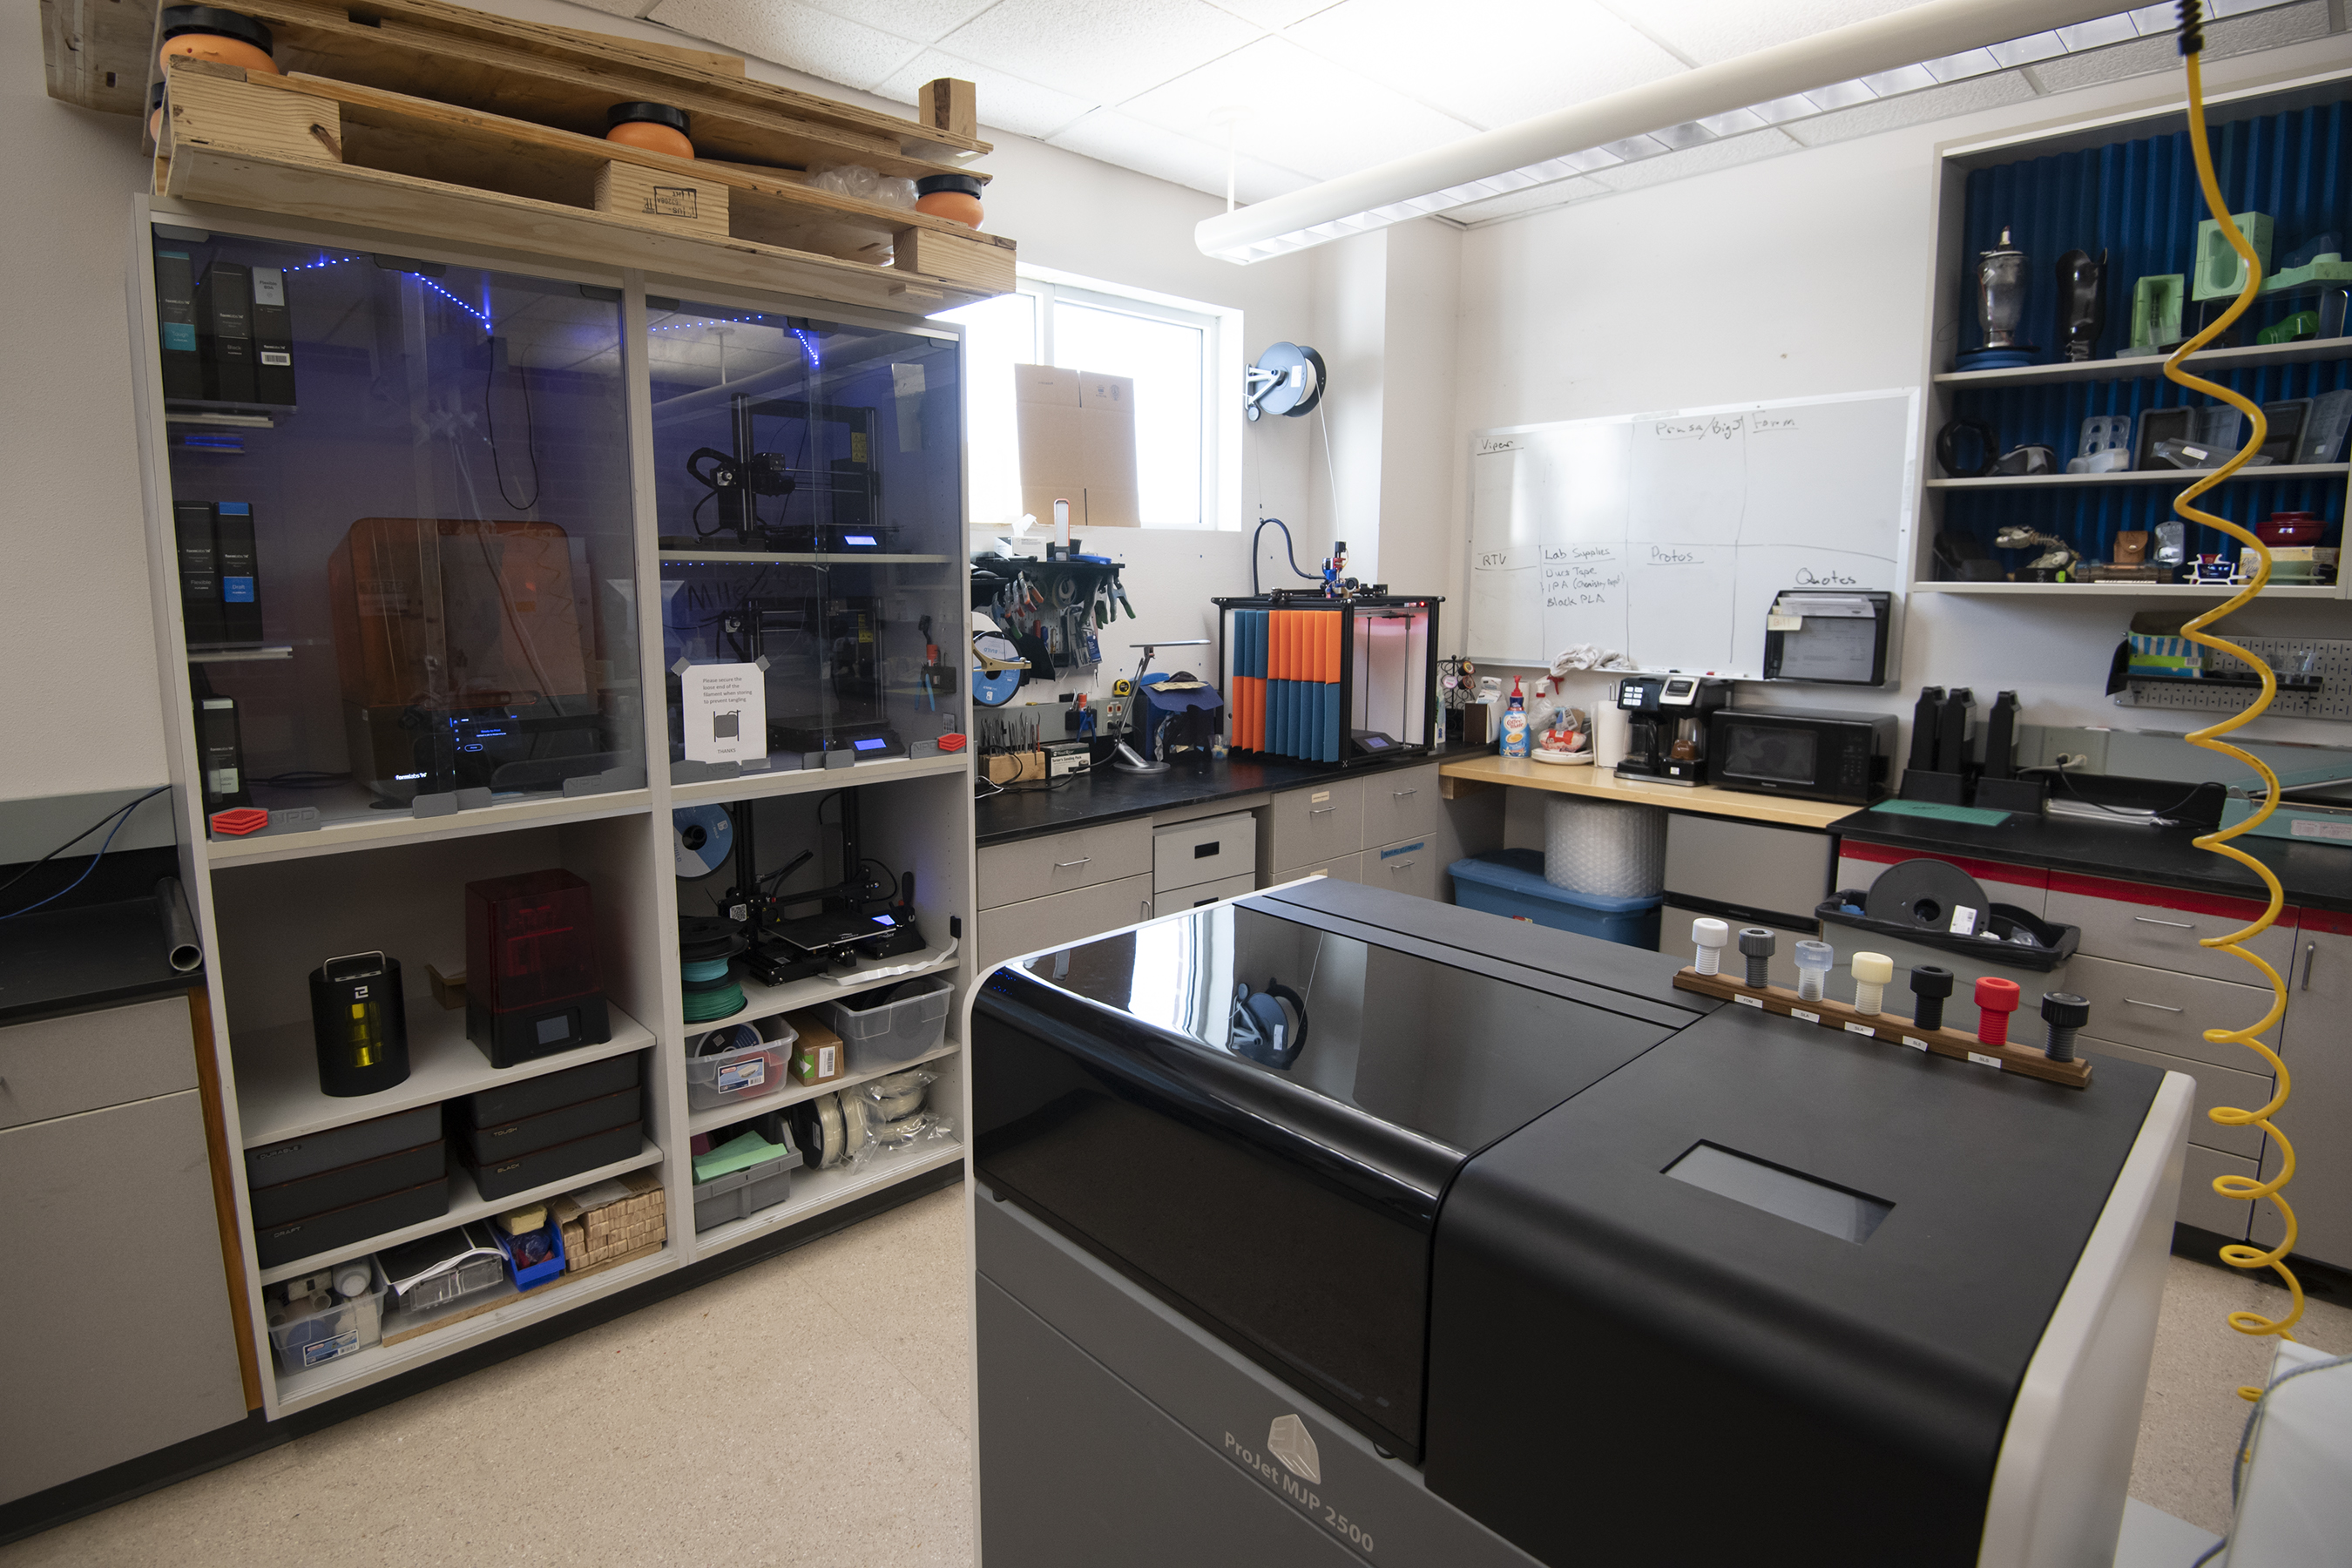 Picture of various lab equipment